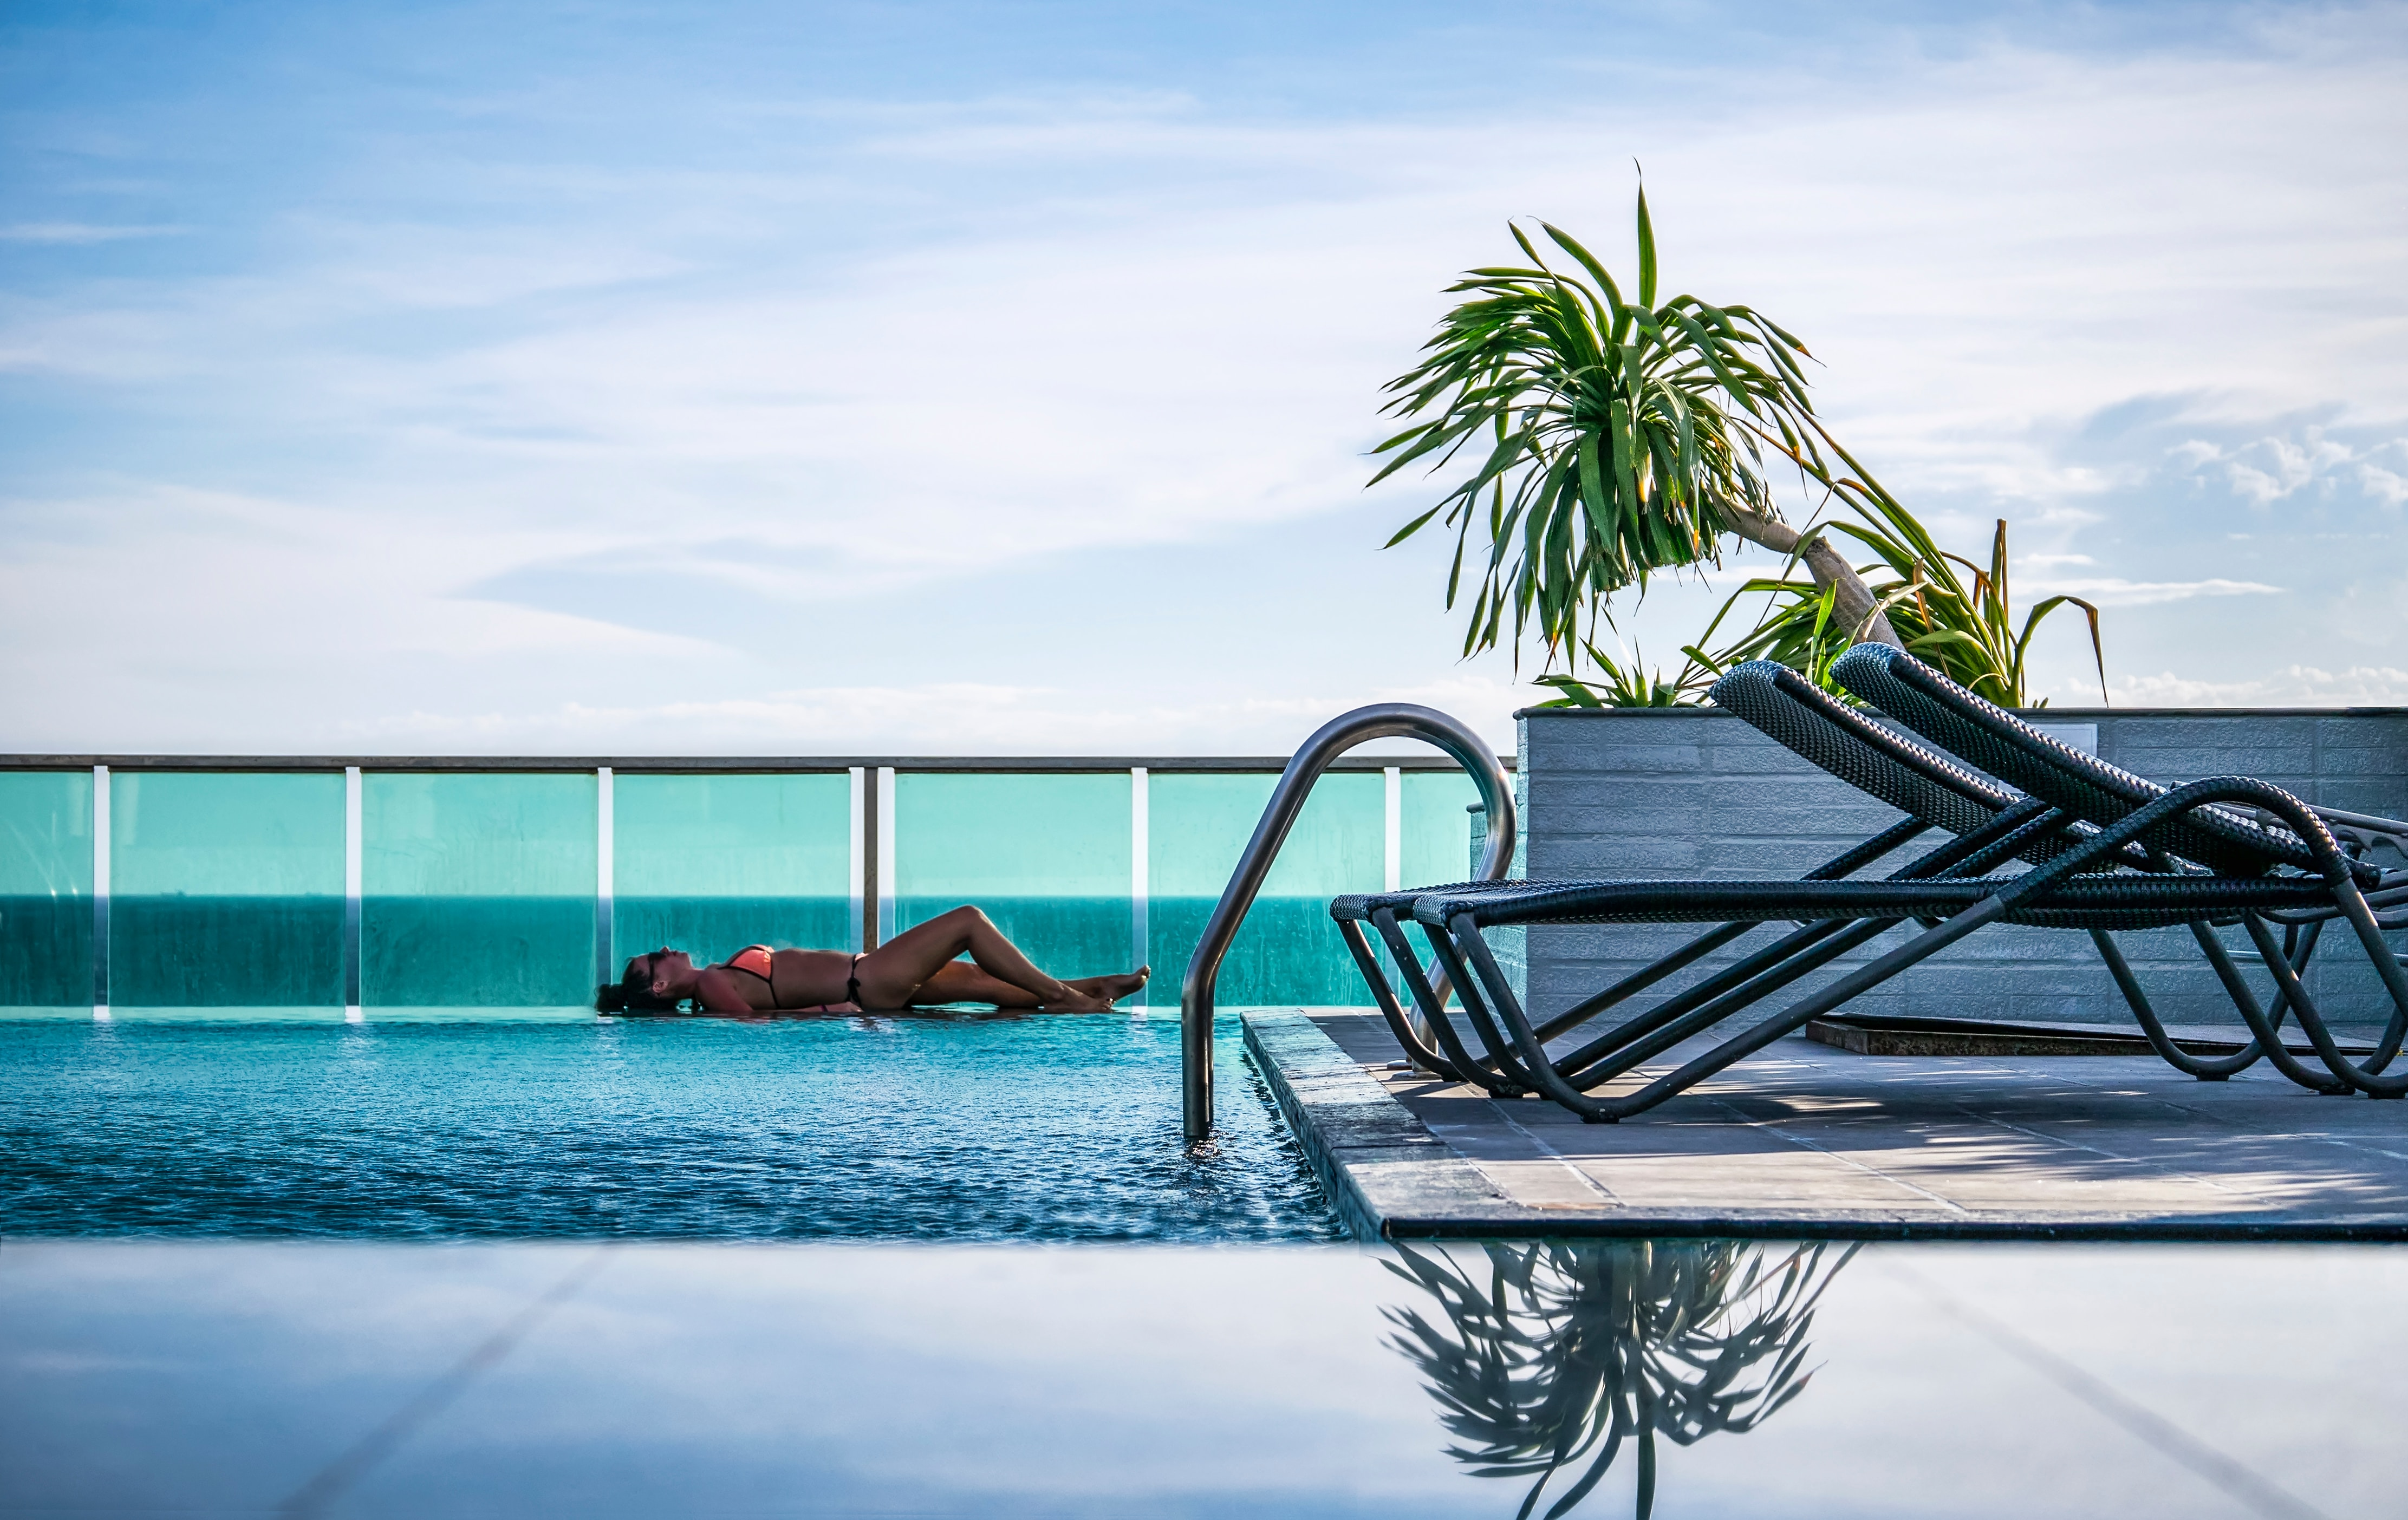 Cuba all-inclusive vacation by the pool.